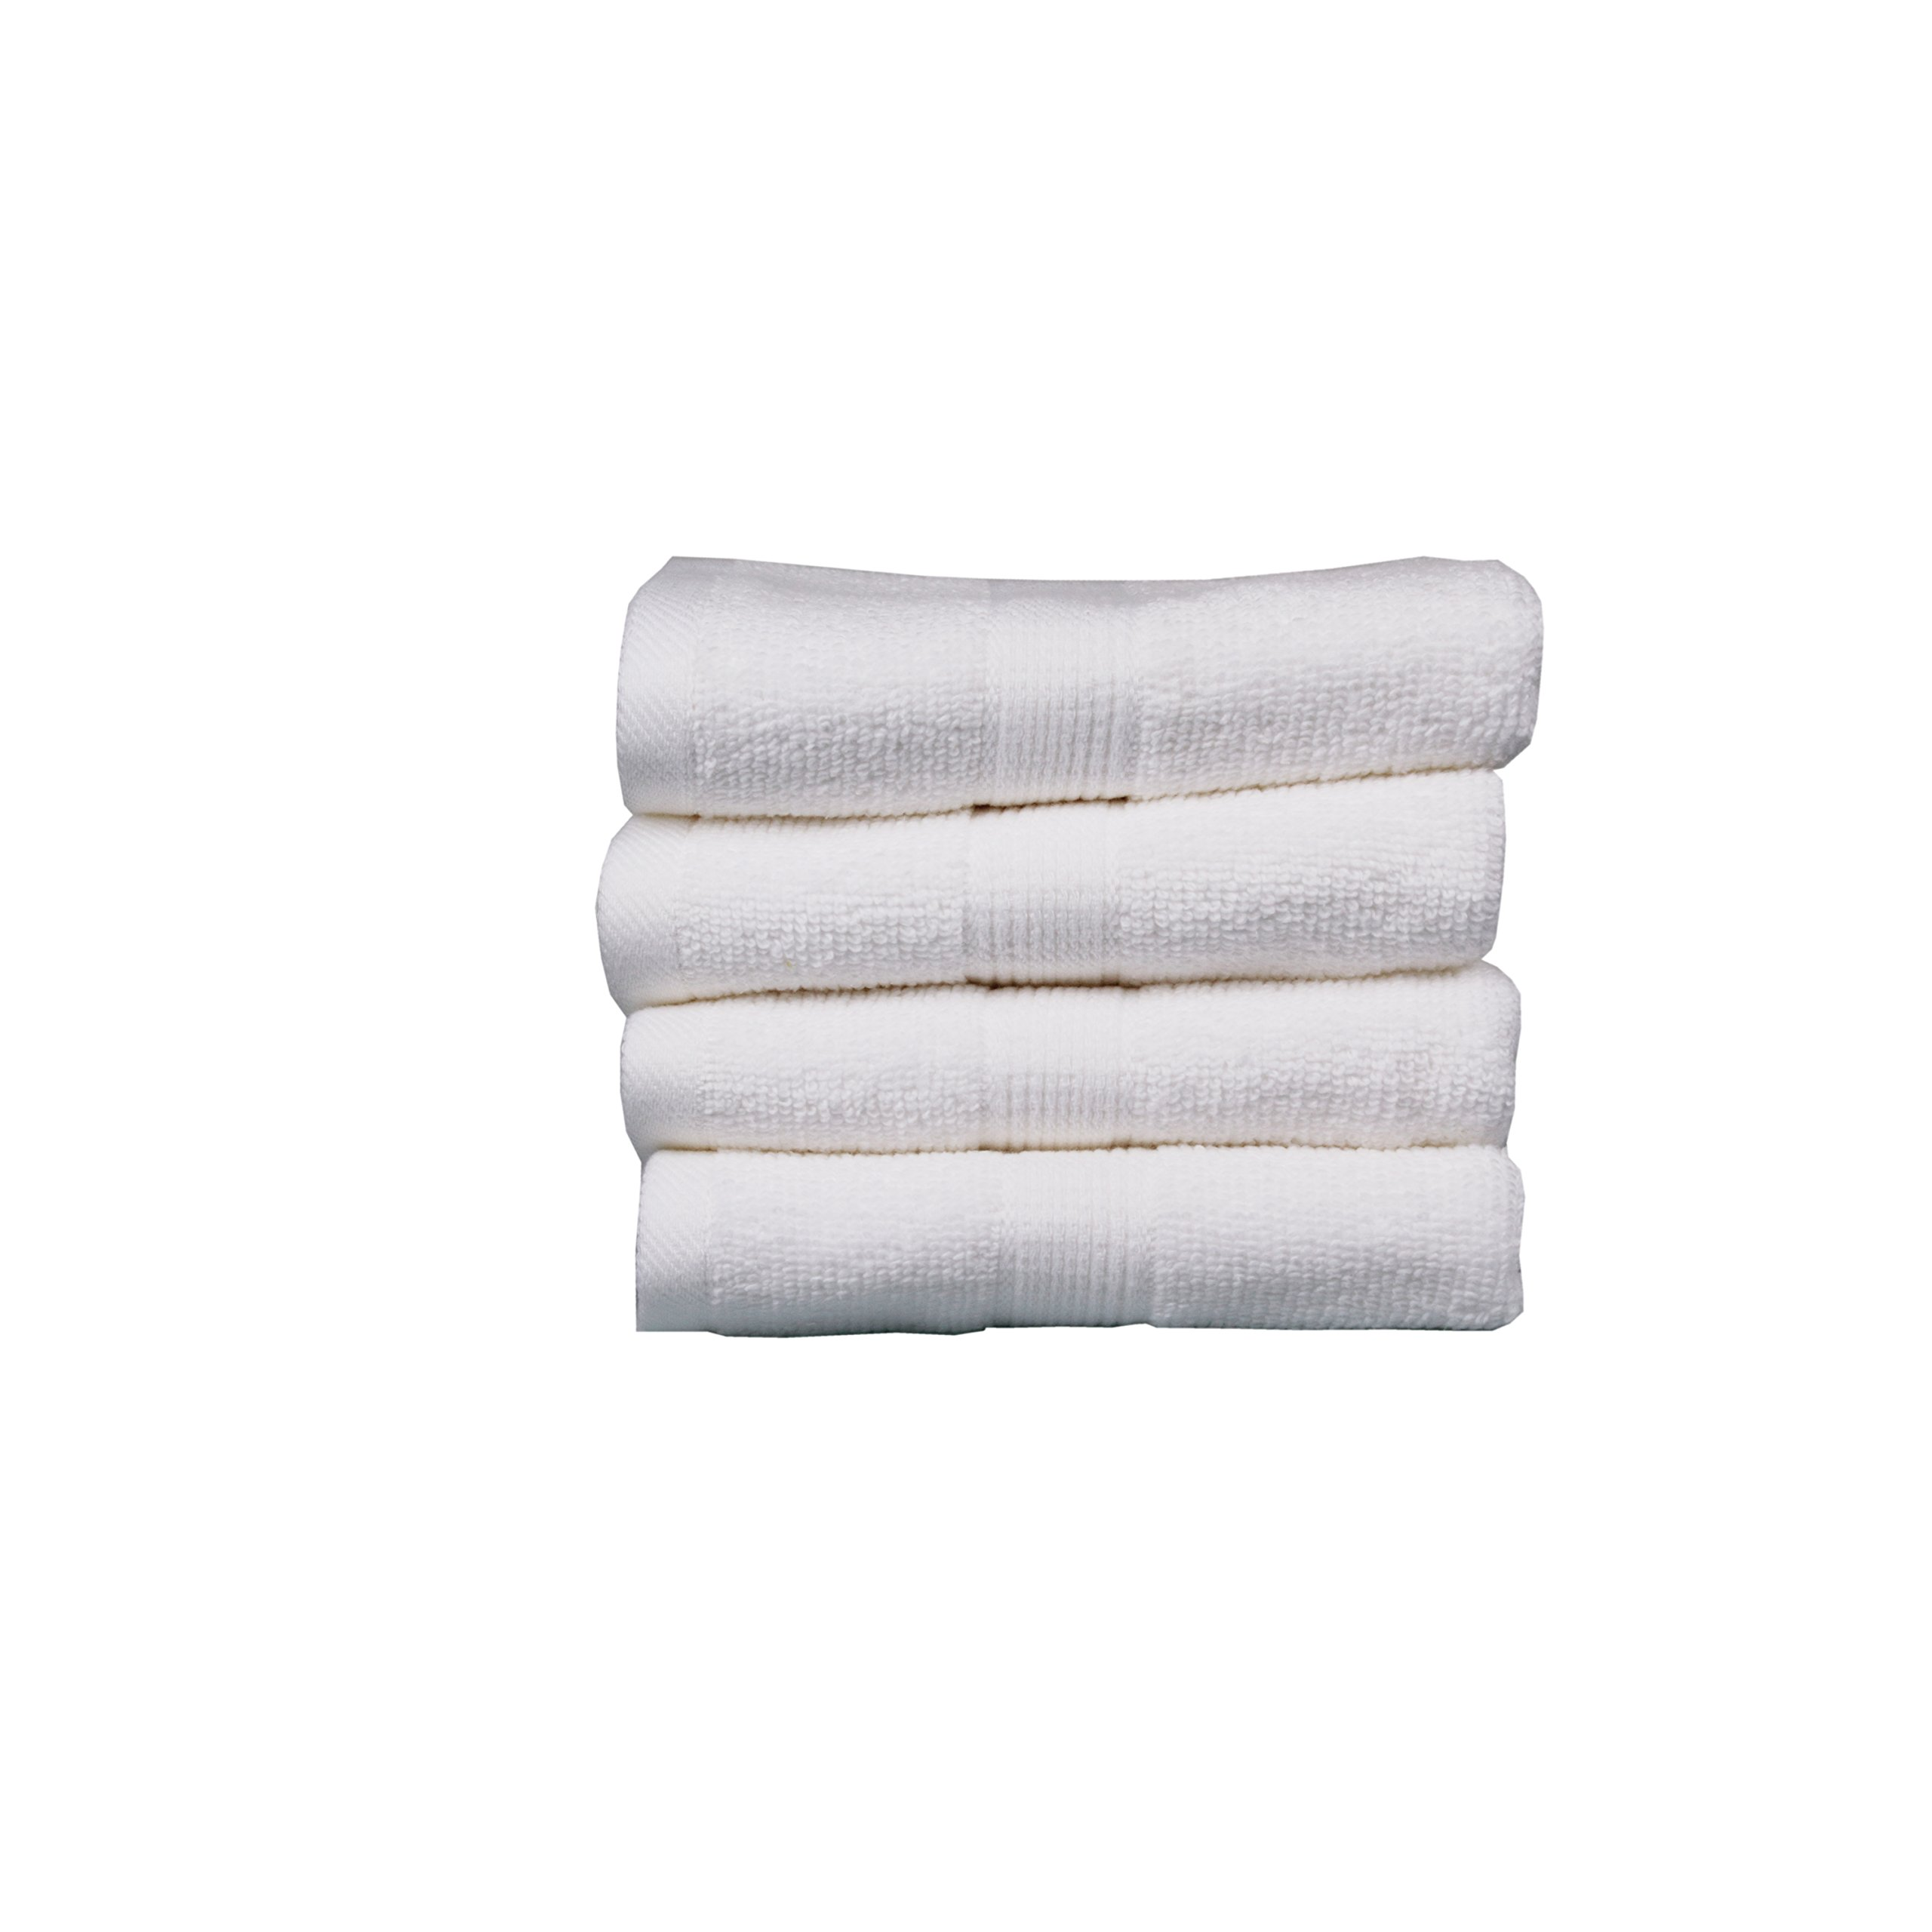 Pure Extravagance Comfort Line, Cotton Large Hand Towels - Multipurpose Use for Bath, Hand, Face, Gym and Spa (4-Pack, White)